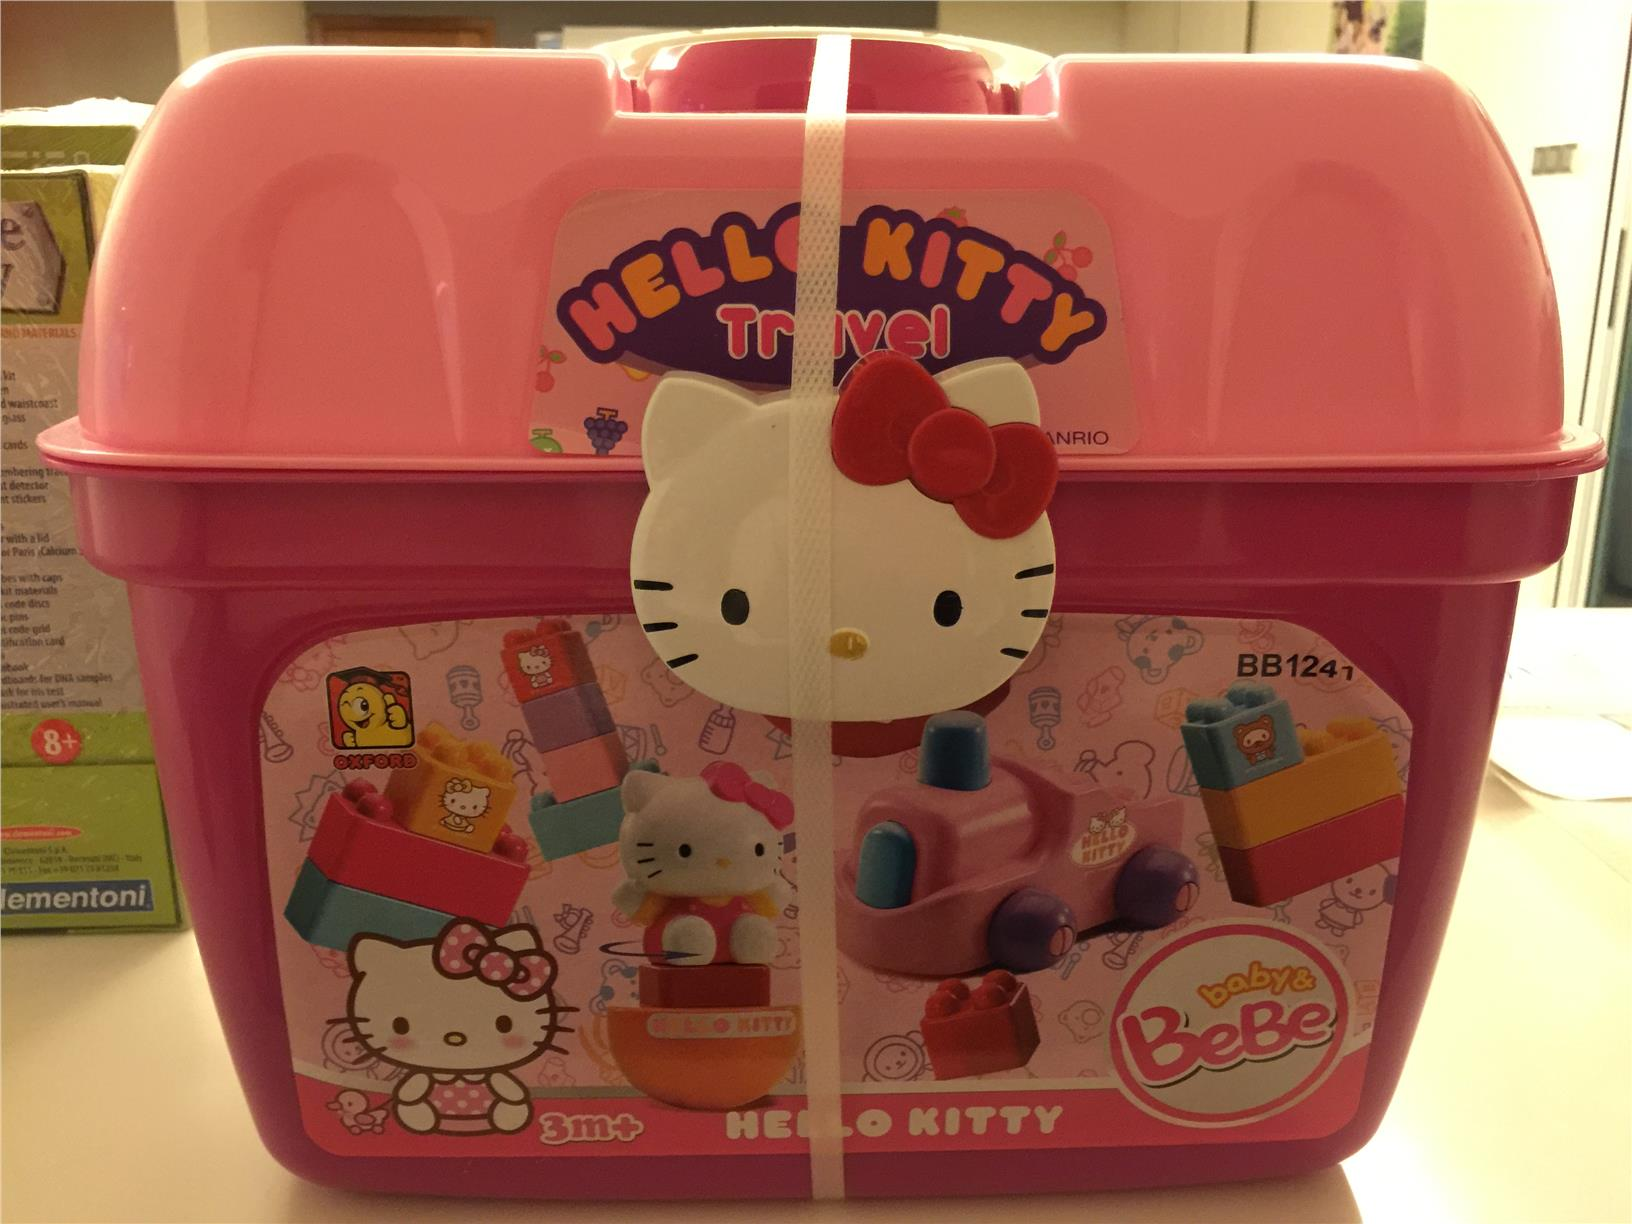 HELLO KITTY GIANT OXFORD LEGO BLOCK